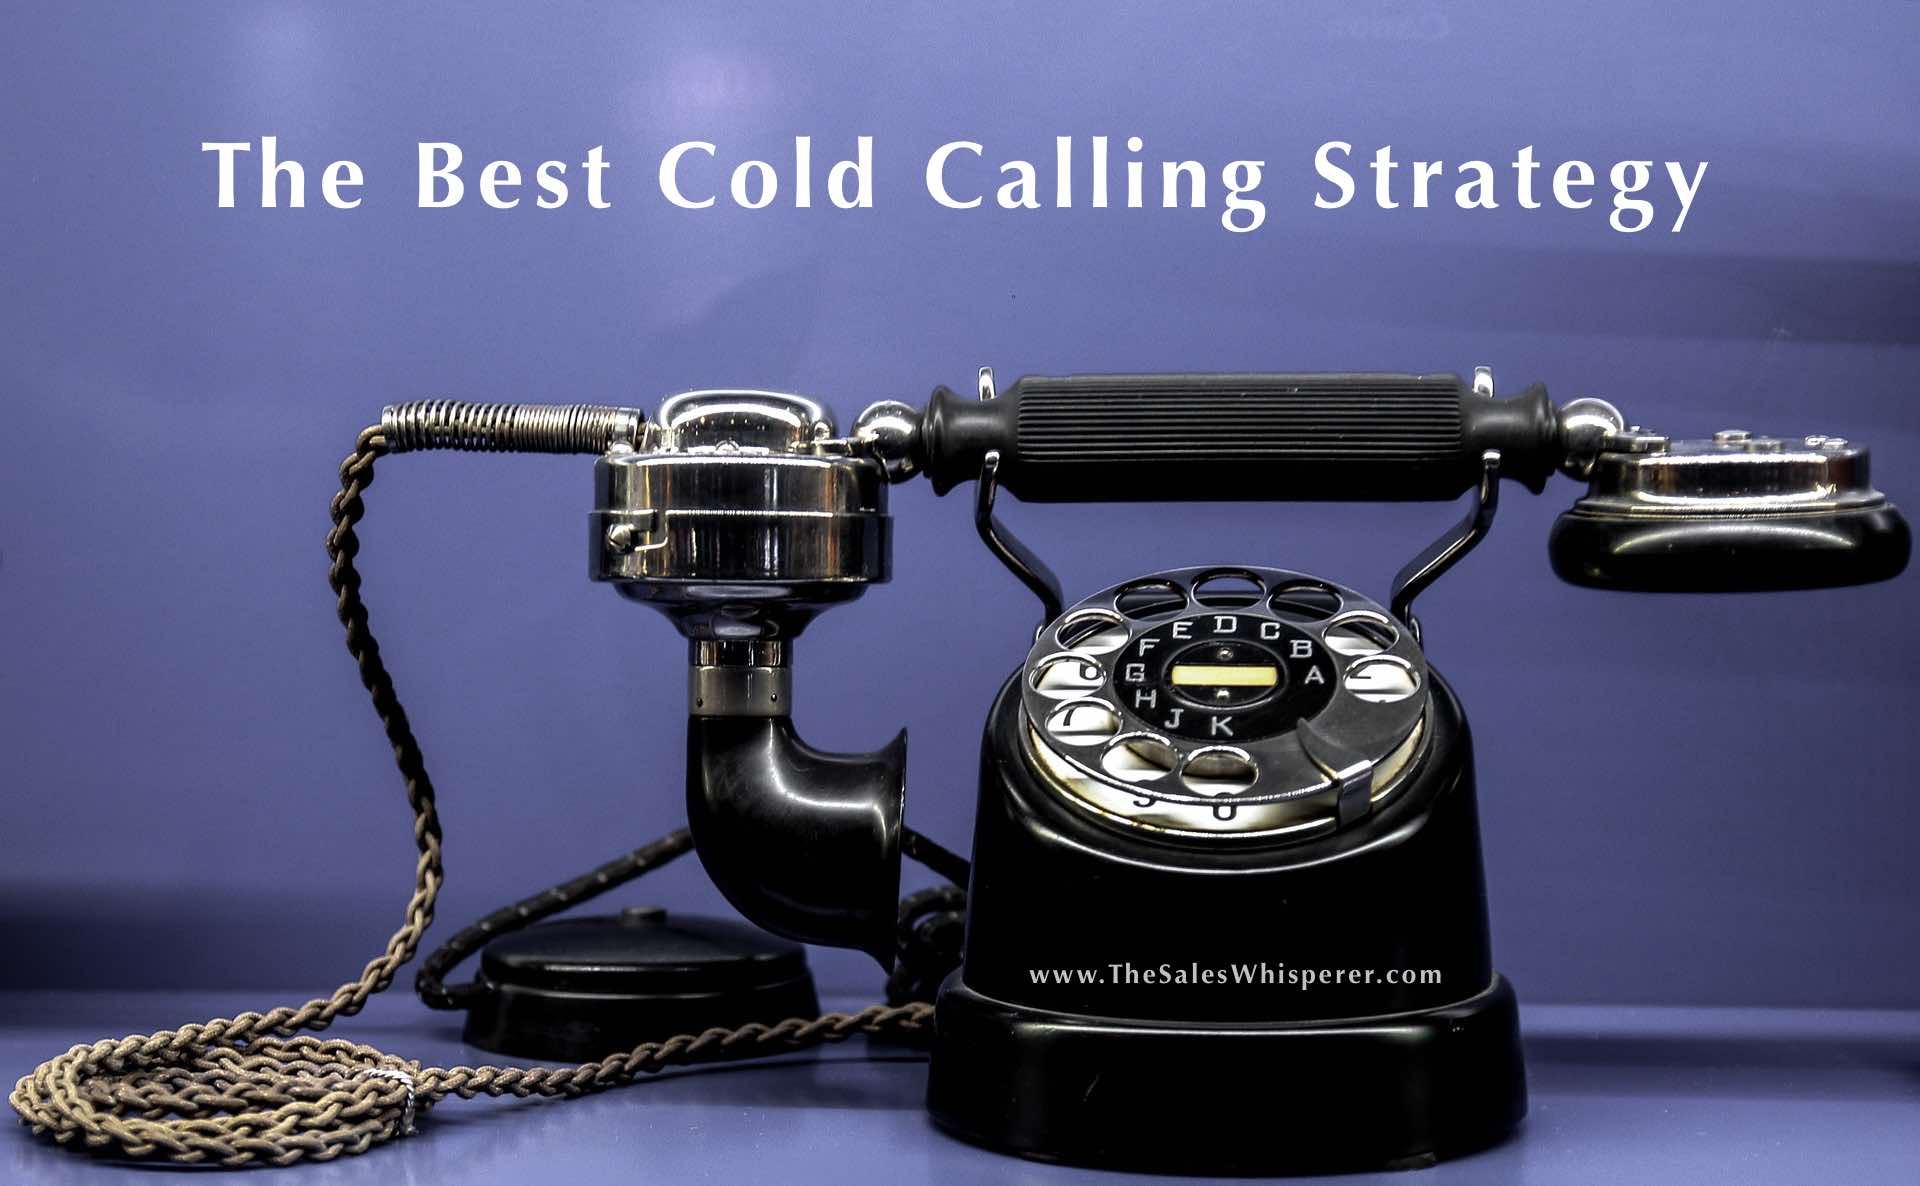 The best cold calling strategy for profitable prospecting in 2021.